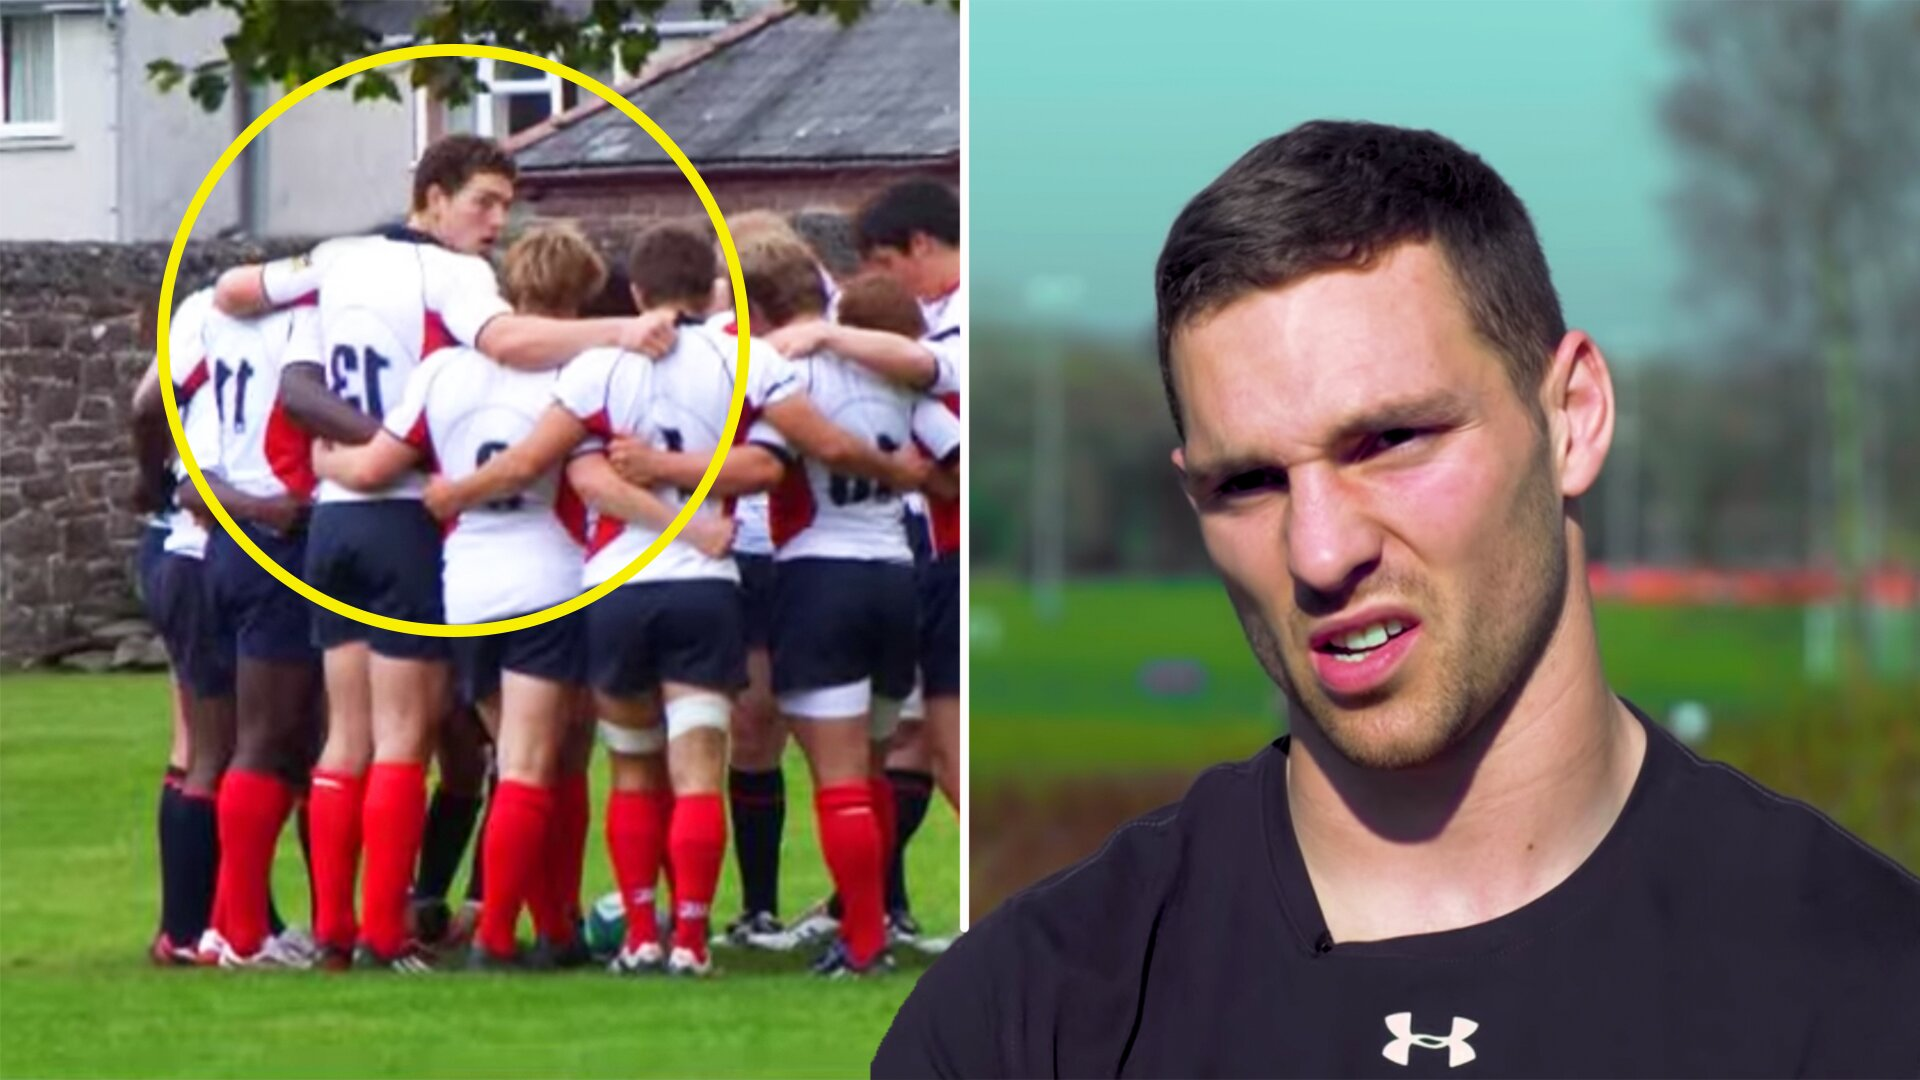 George North should never have been allowed to play schoolboy rugby